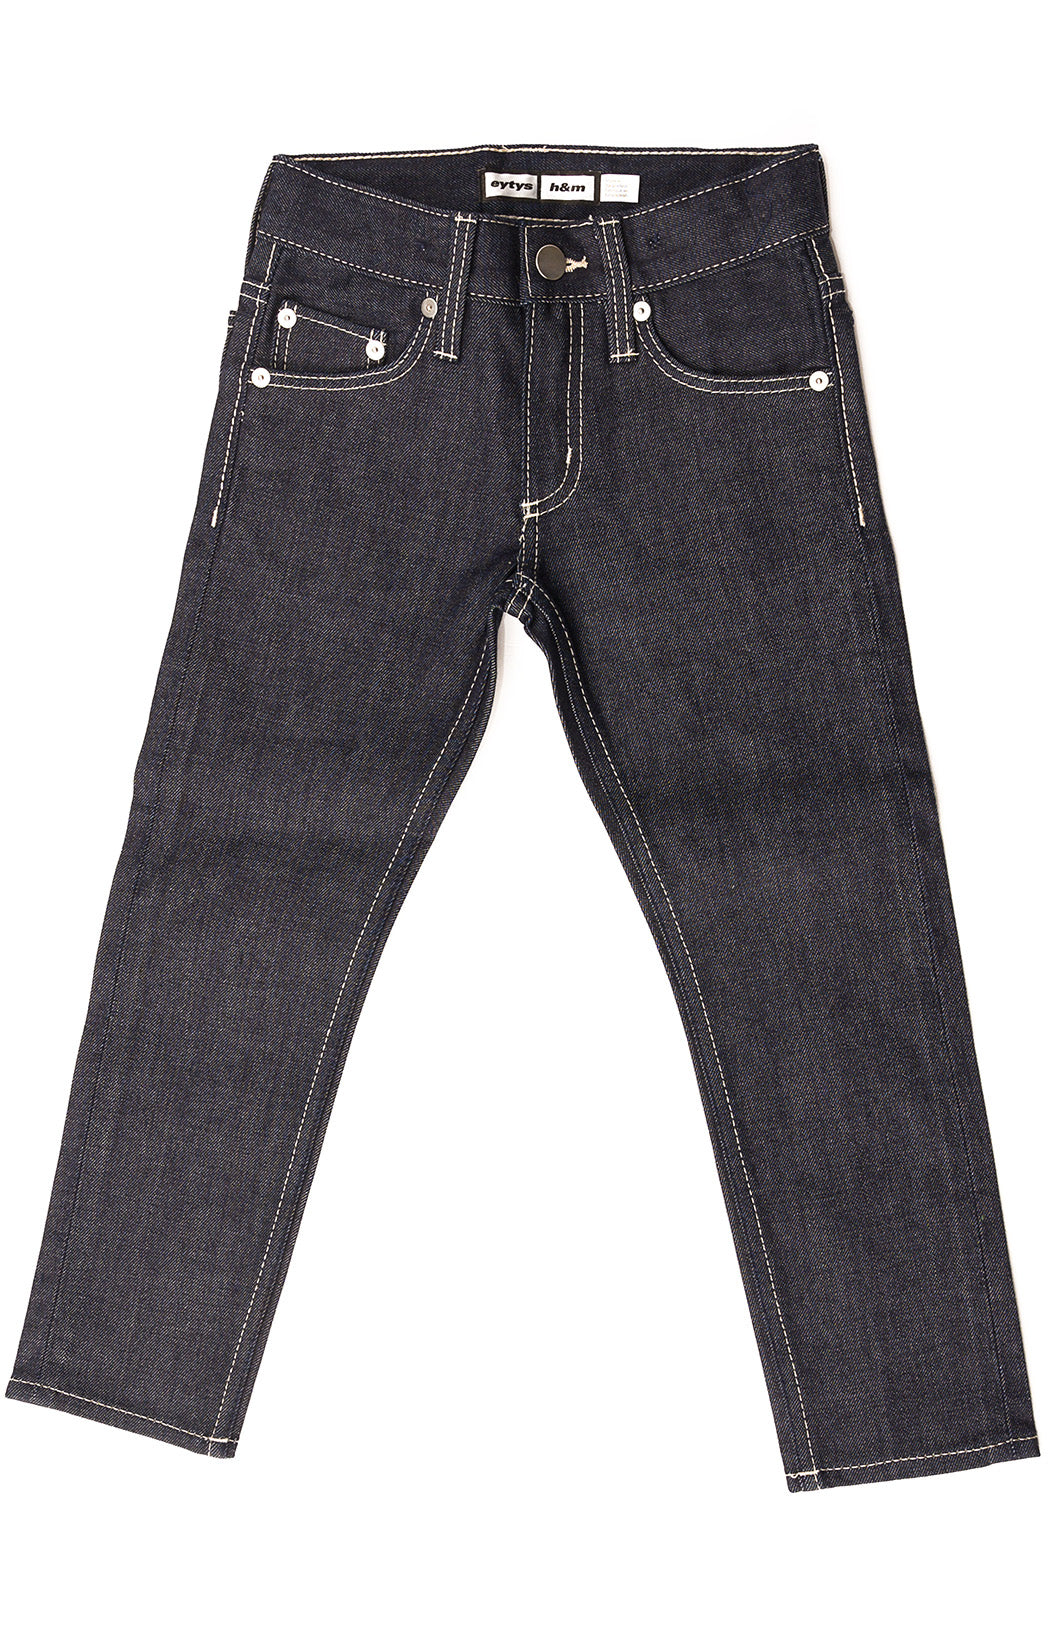 Front view of H & M Jeans Size: no tags fits like 5-6 long